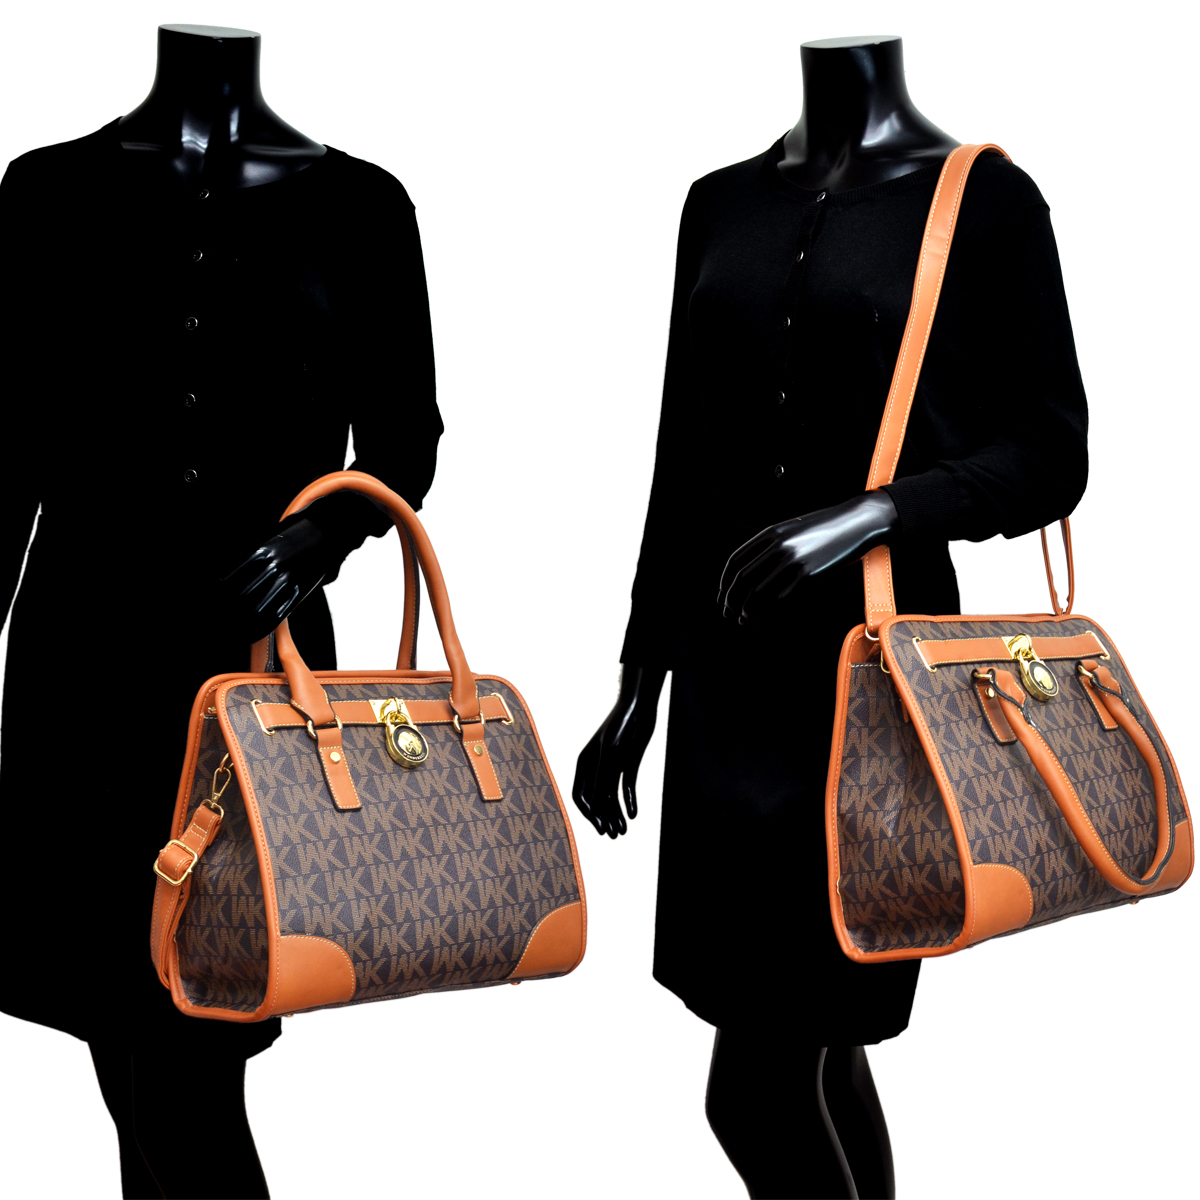 Medium Satchel with Front Lock Deco and Shoulder Strap